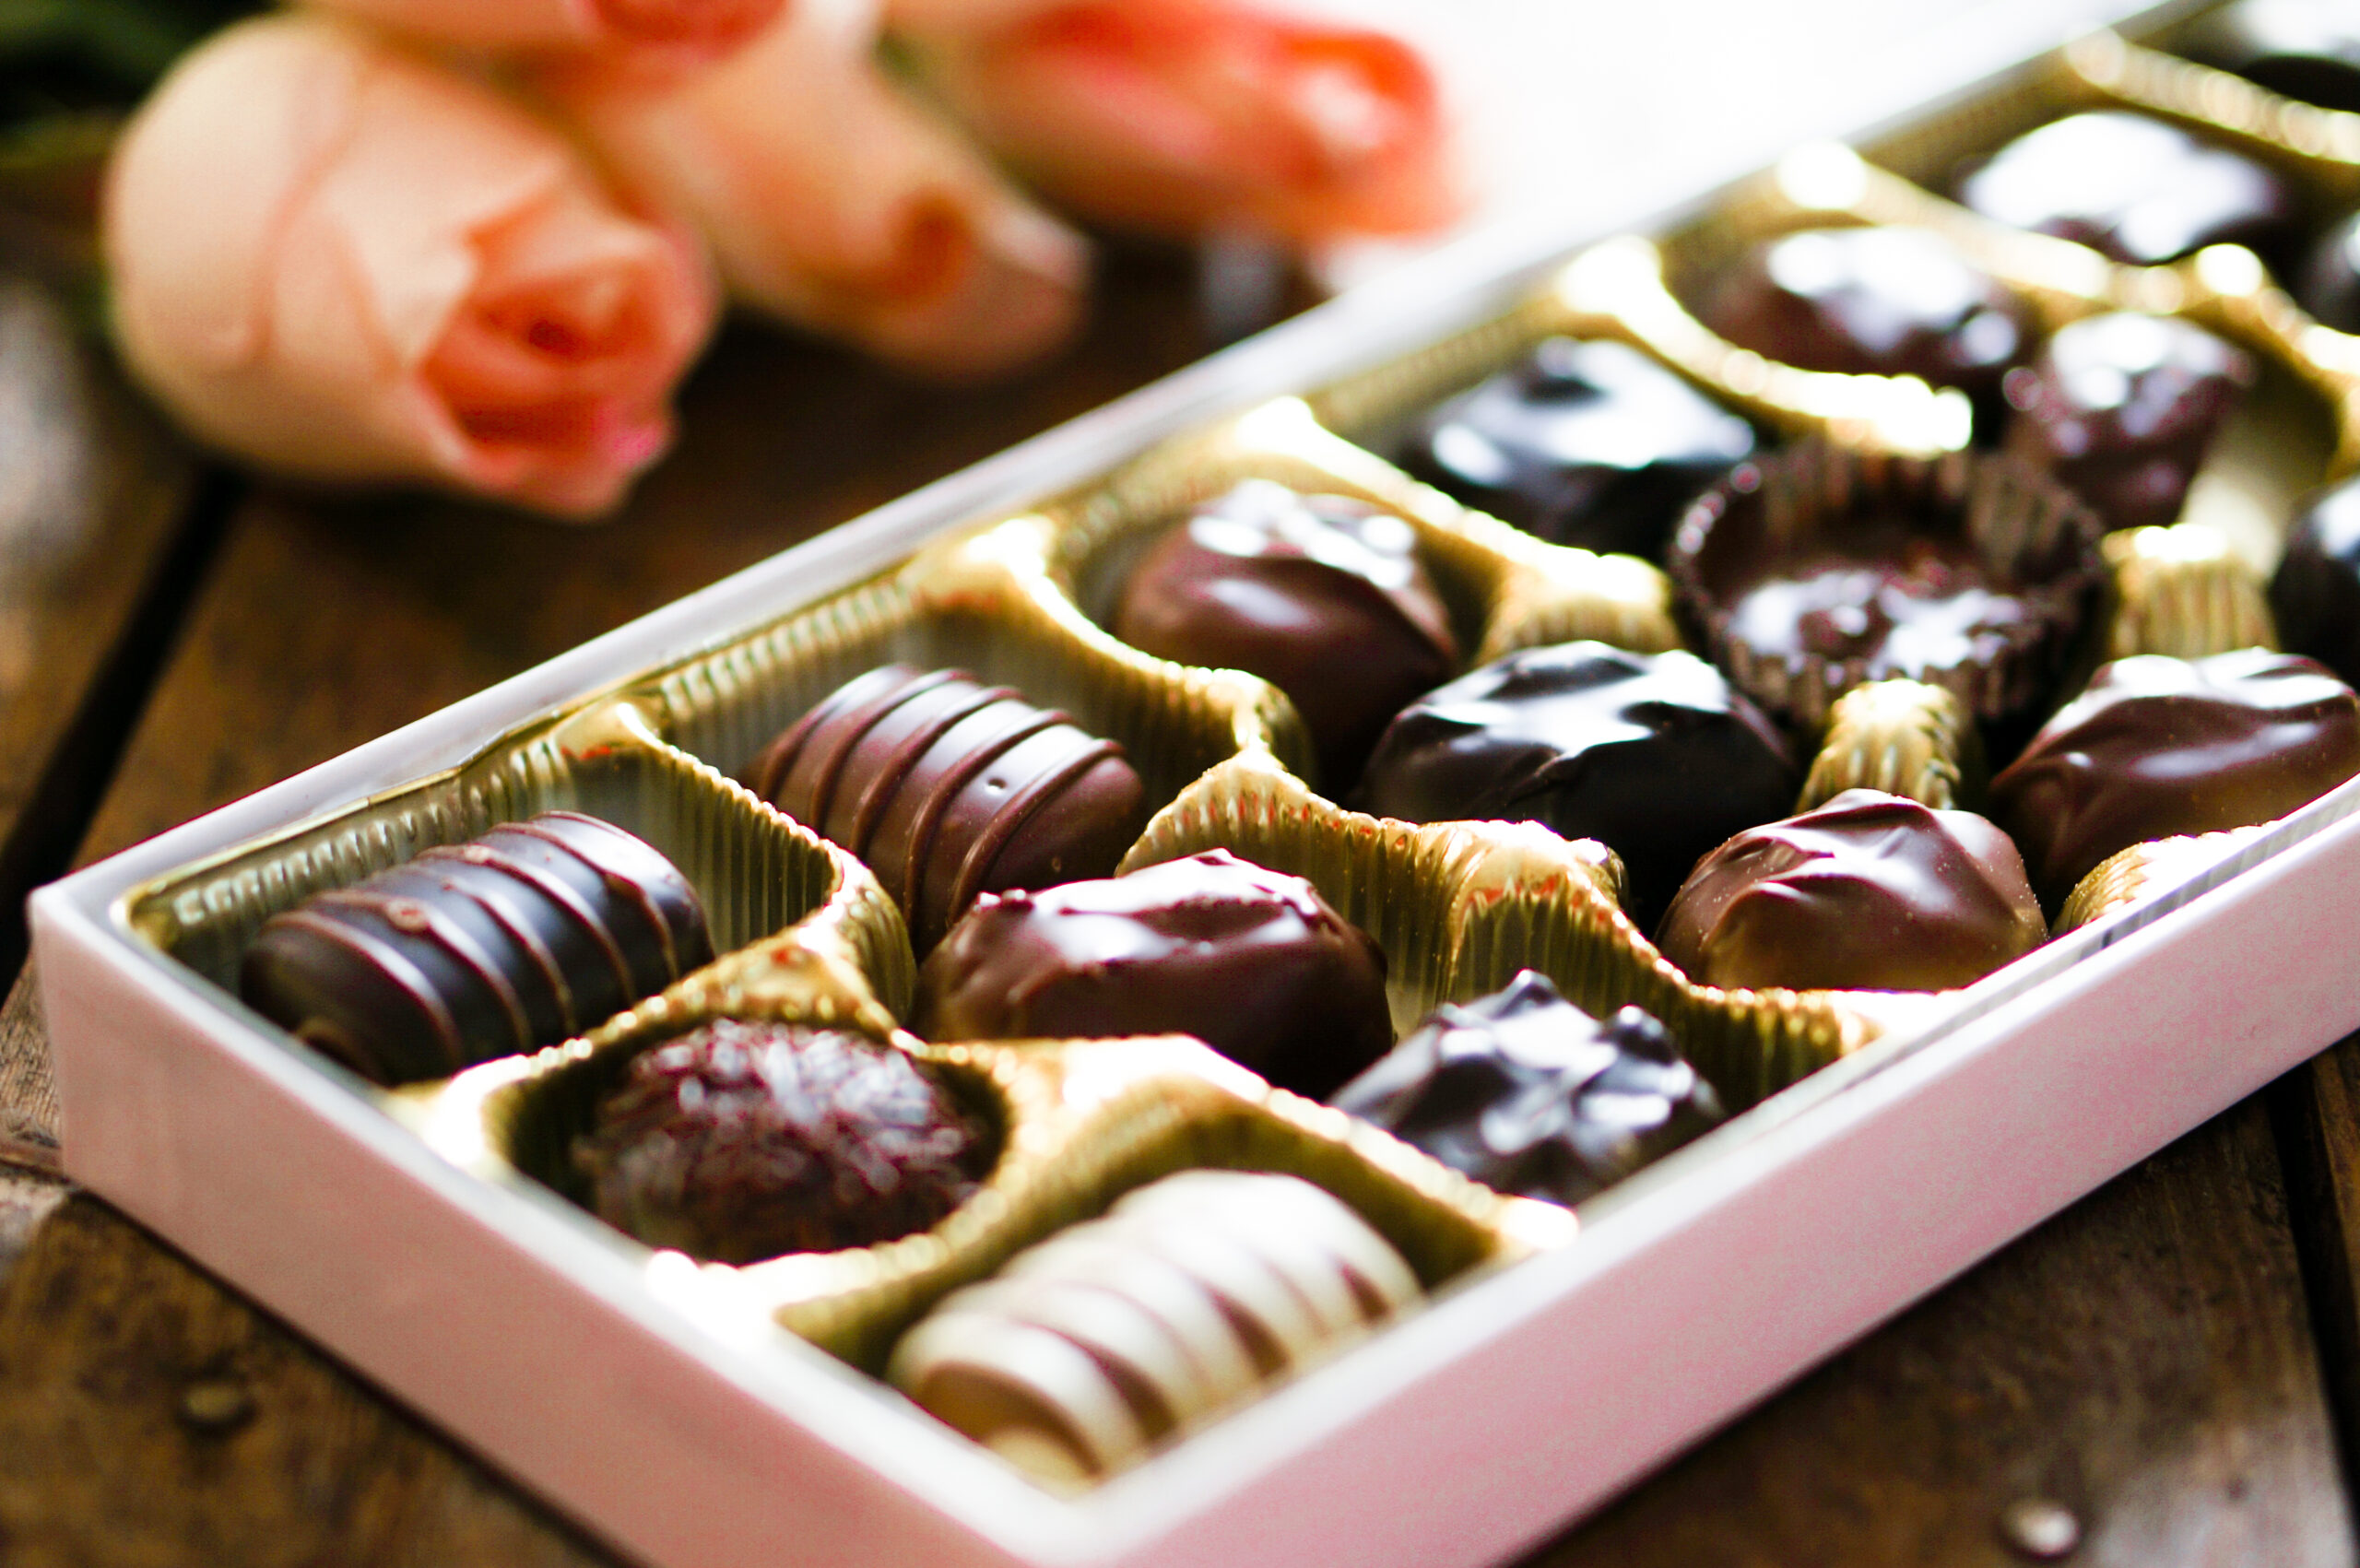 Confections, Chocolate & Candy